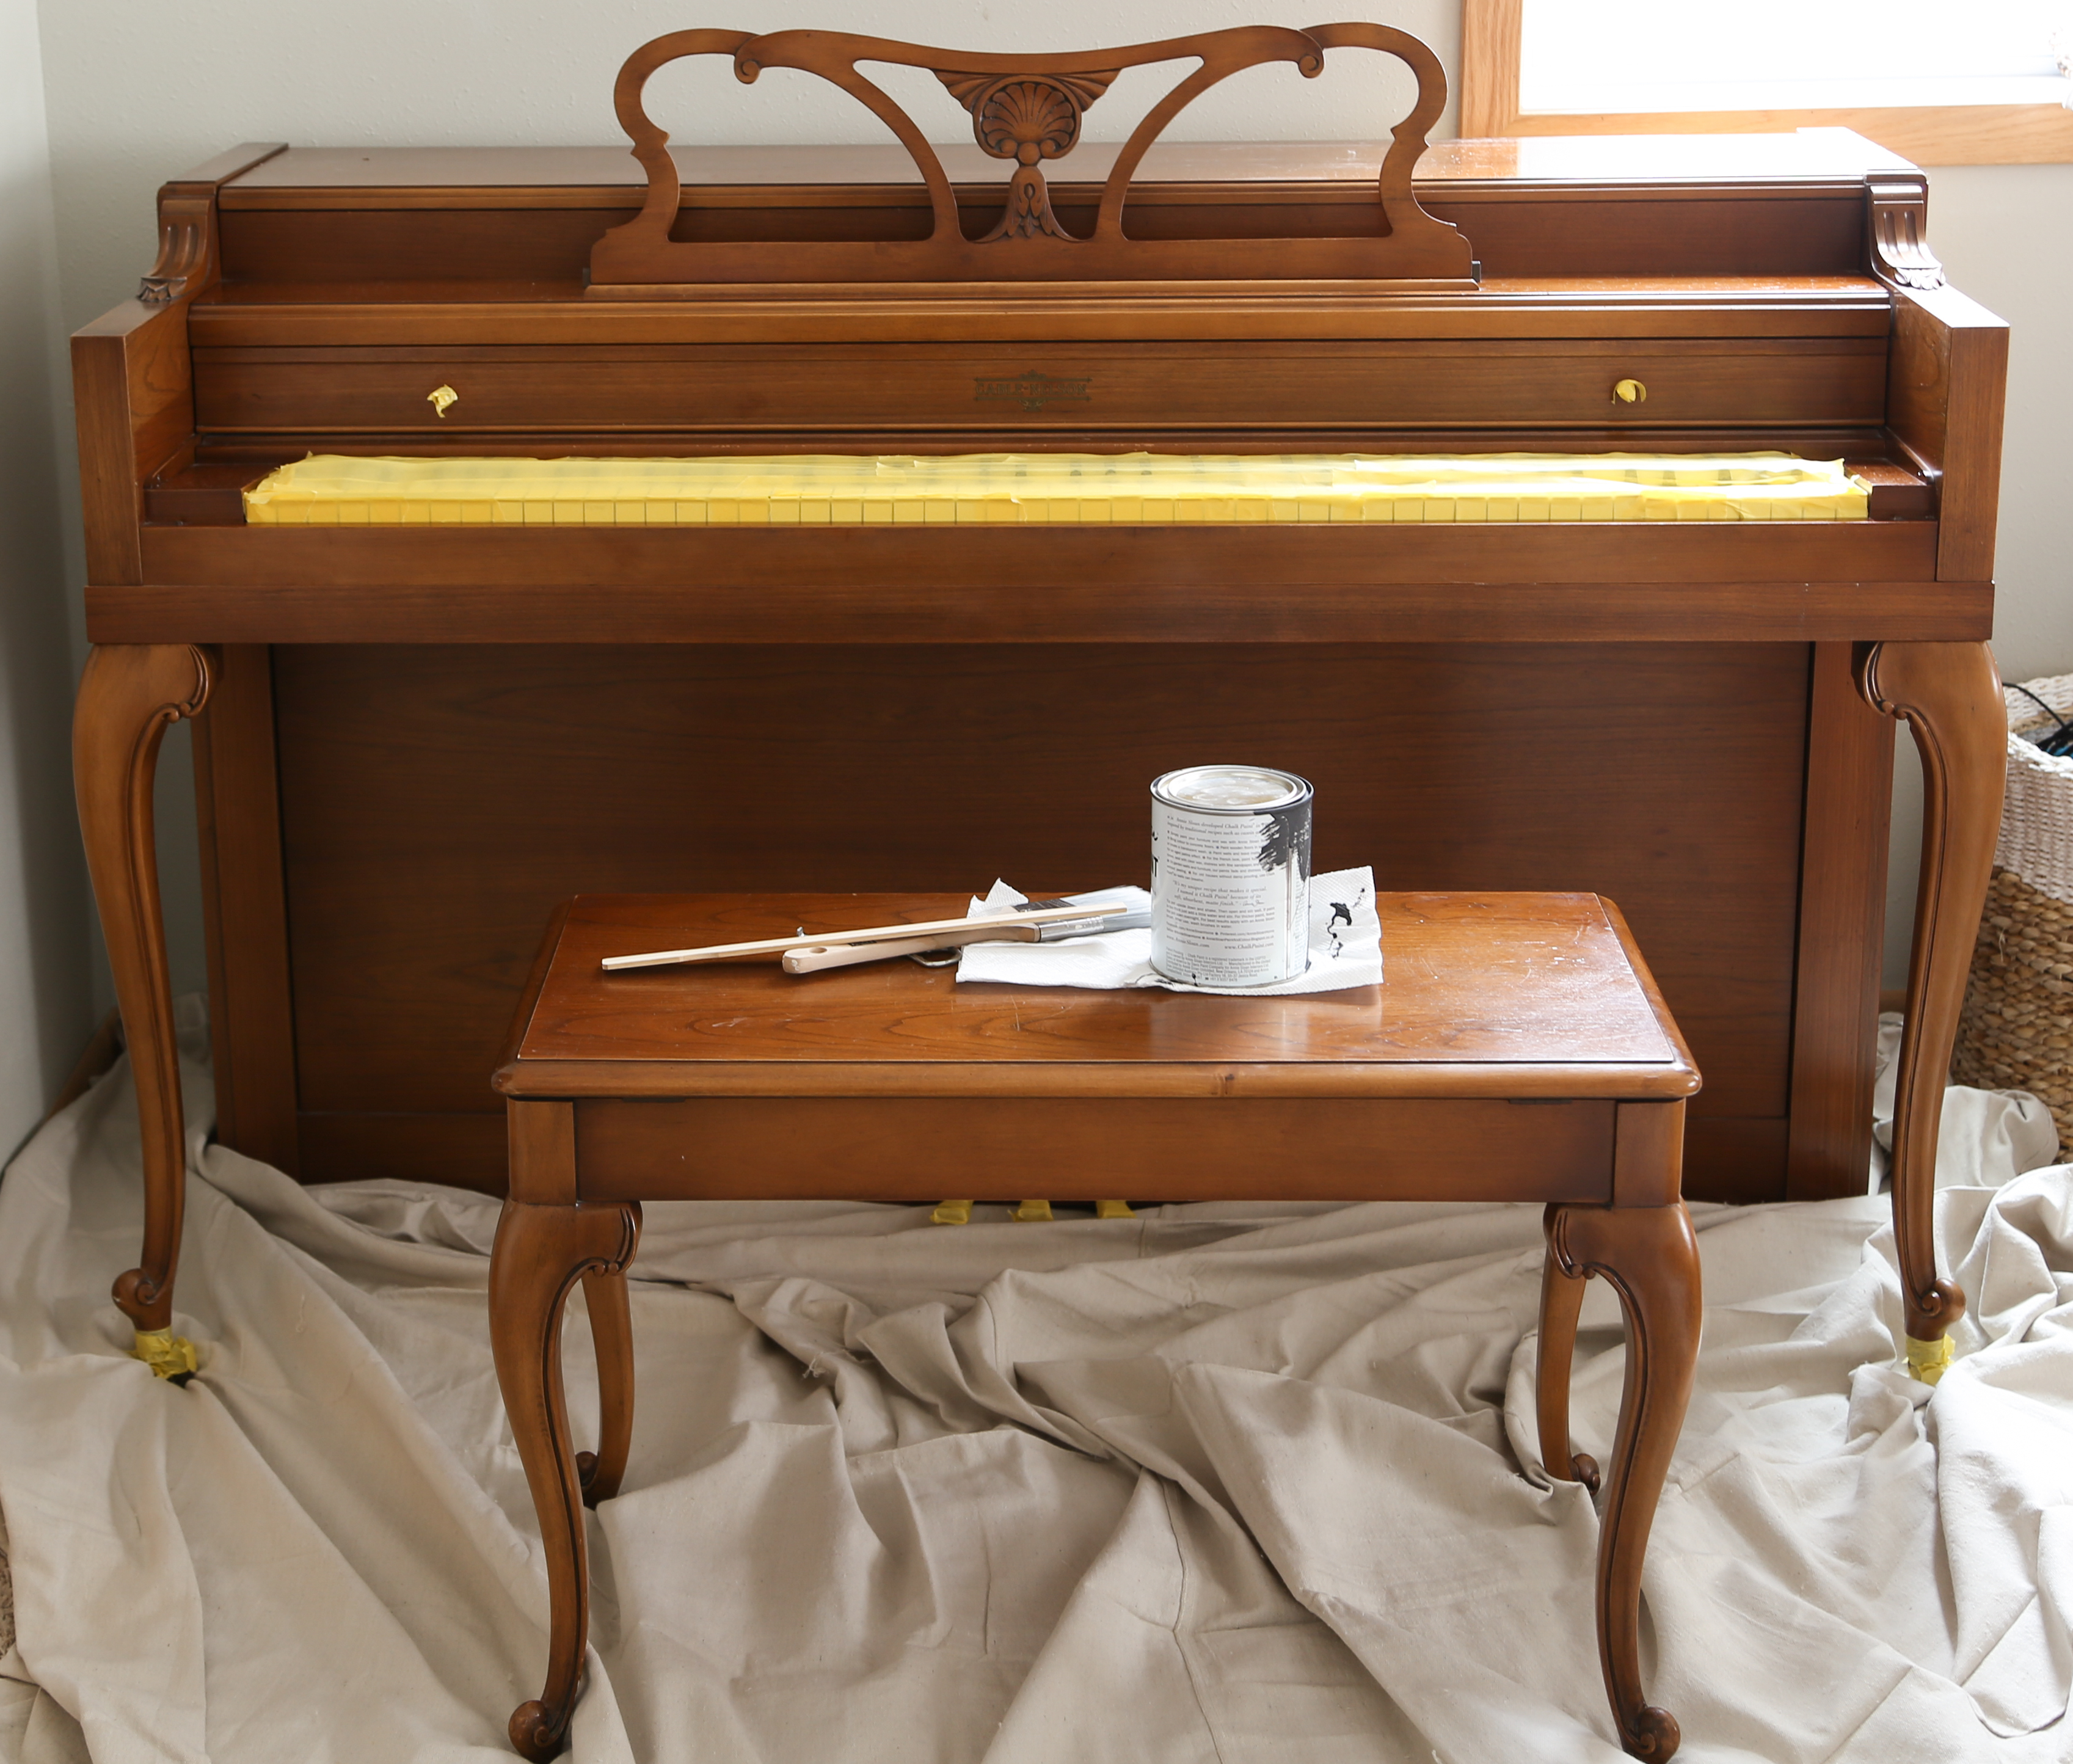 Prepping the piano for painting with painters tape.